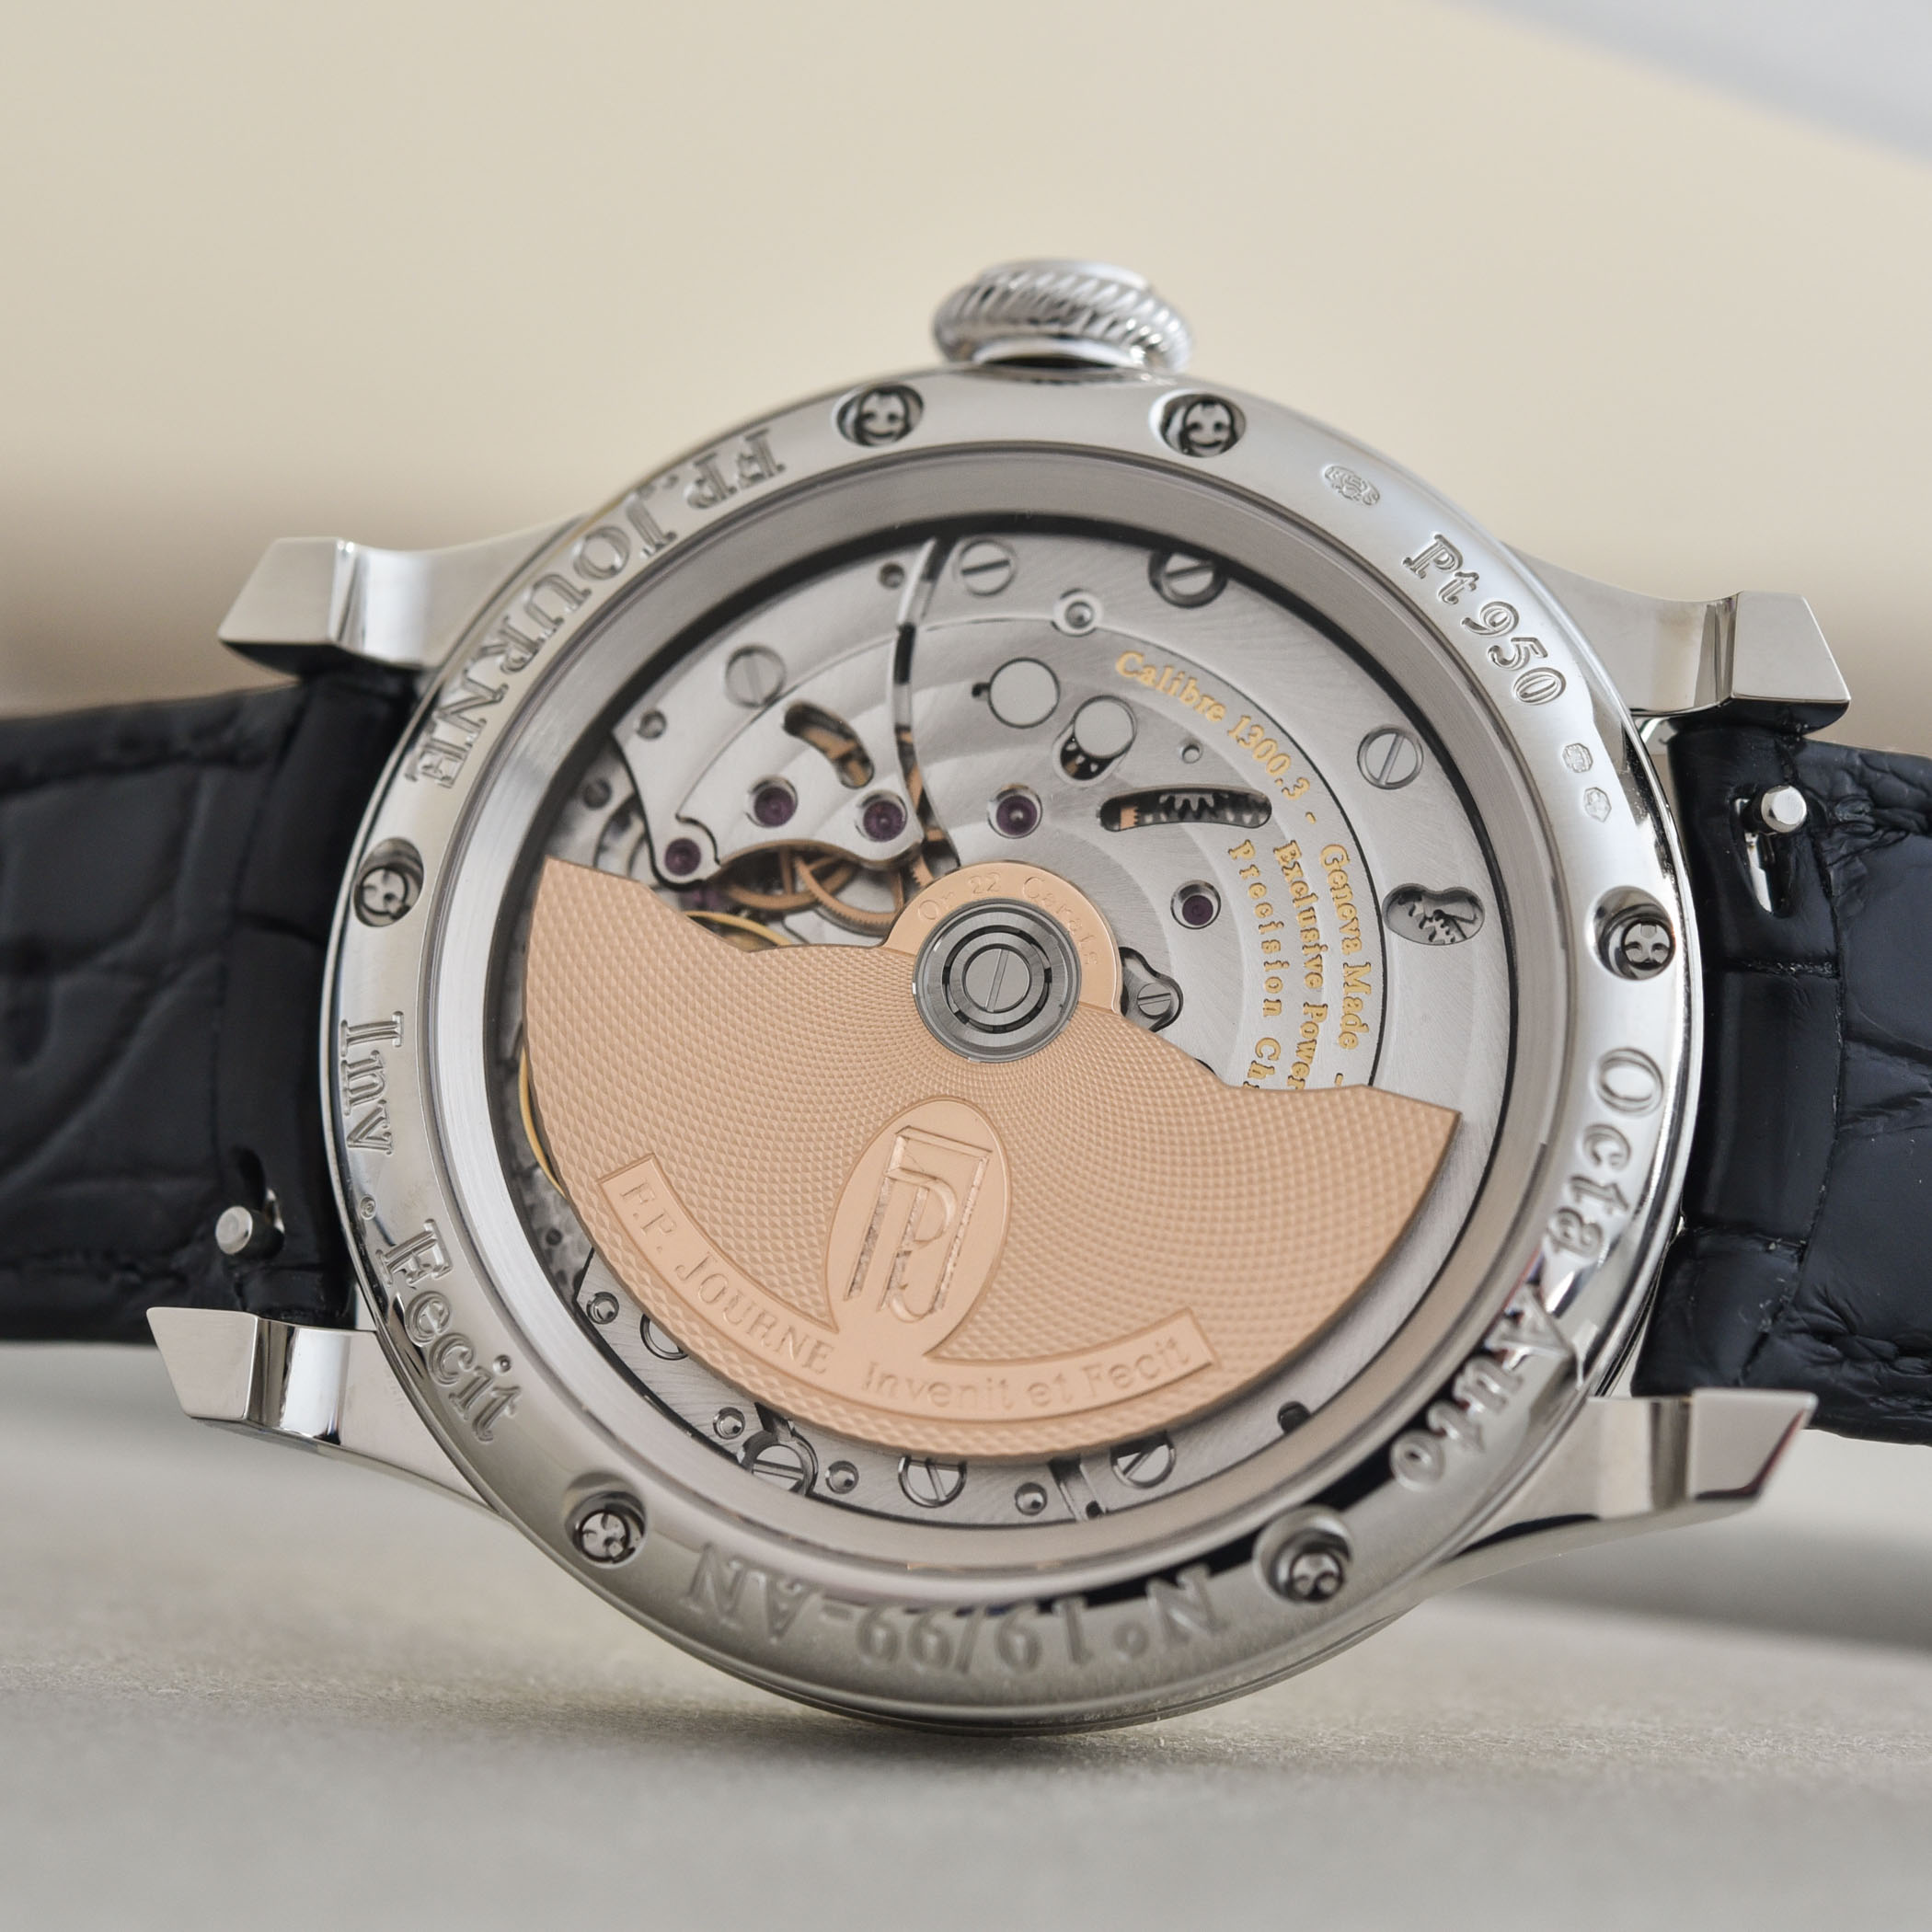 FP Journe Automatique Limited Edition 20th anniversary Octa - review - 13